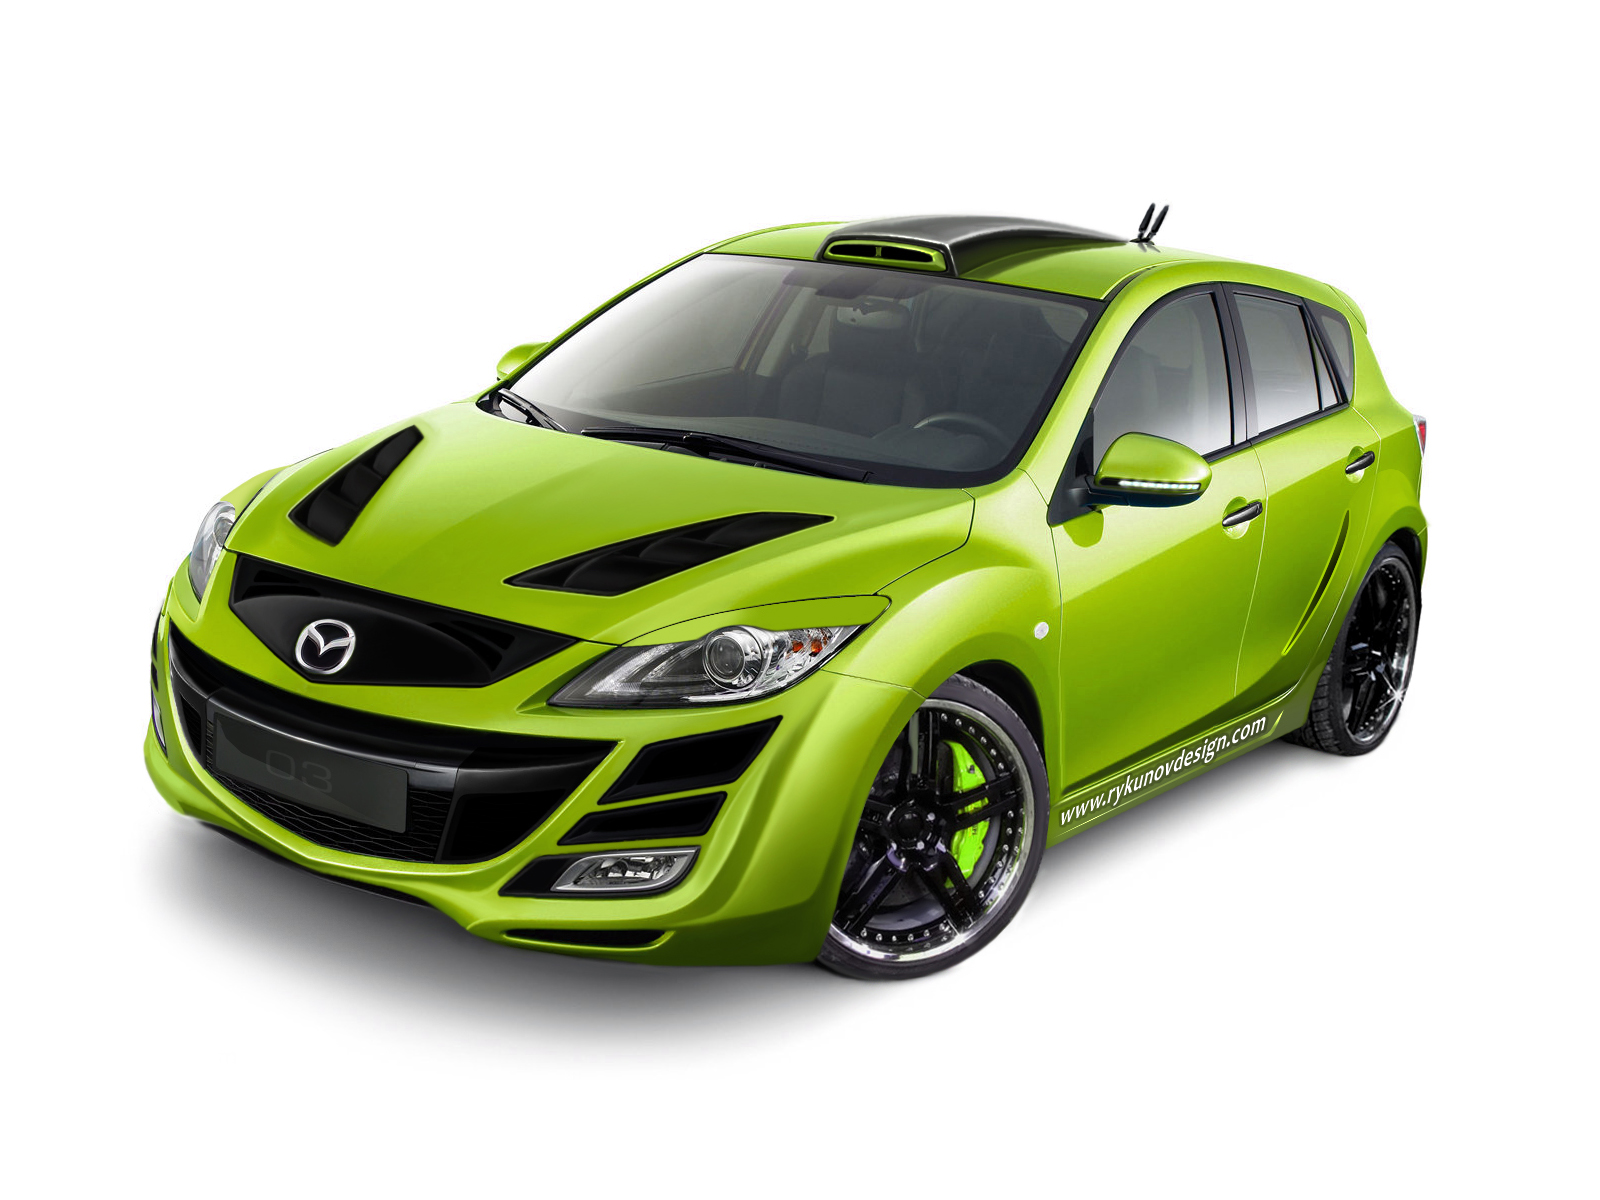 2013 Mazda Vector 3 Wallpaper HD Car Wallpapers ID 3889